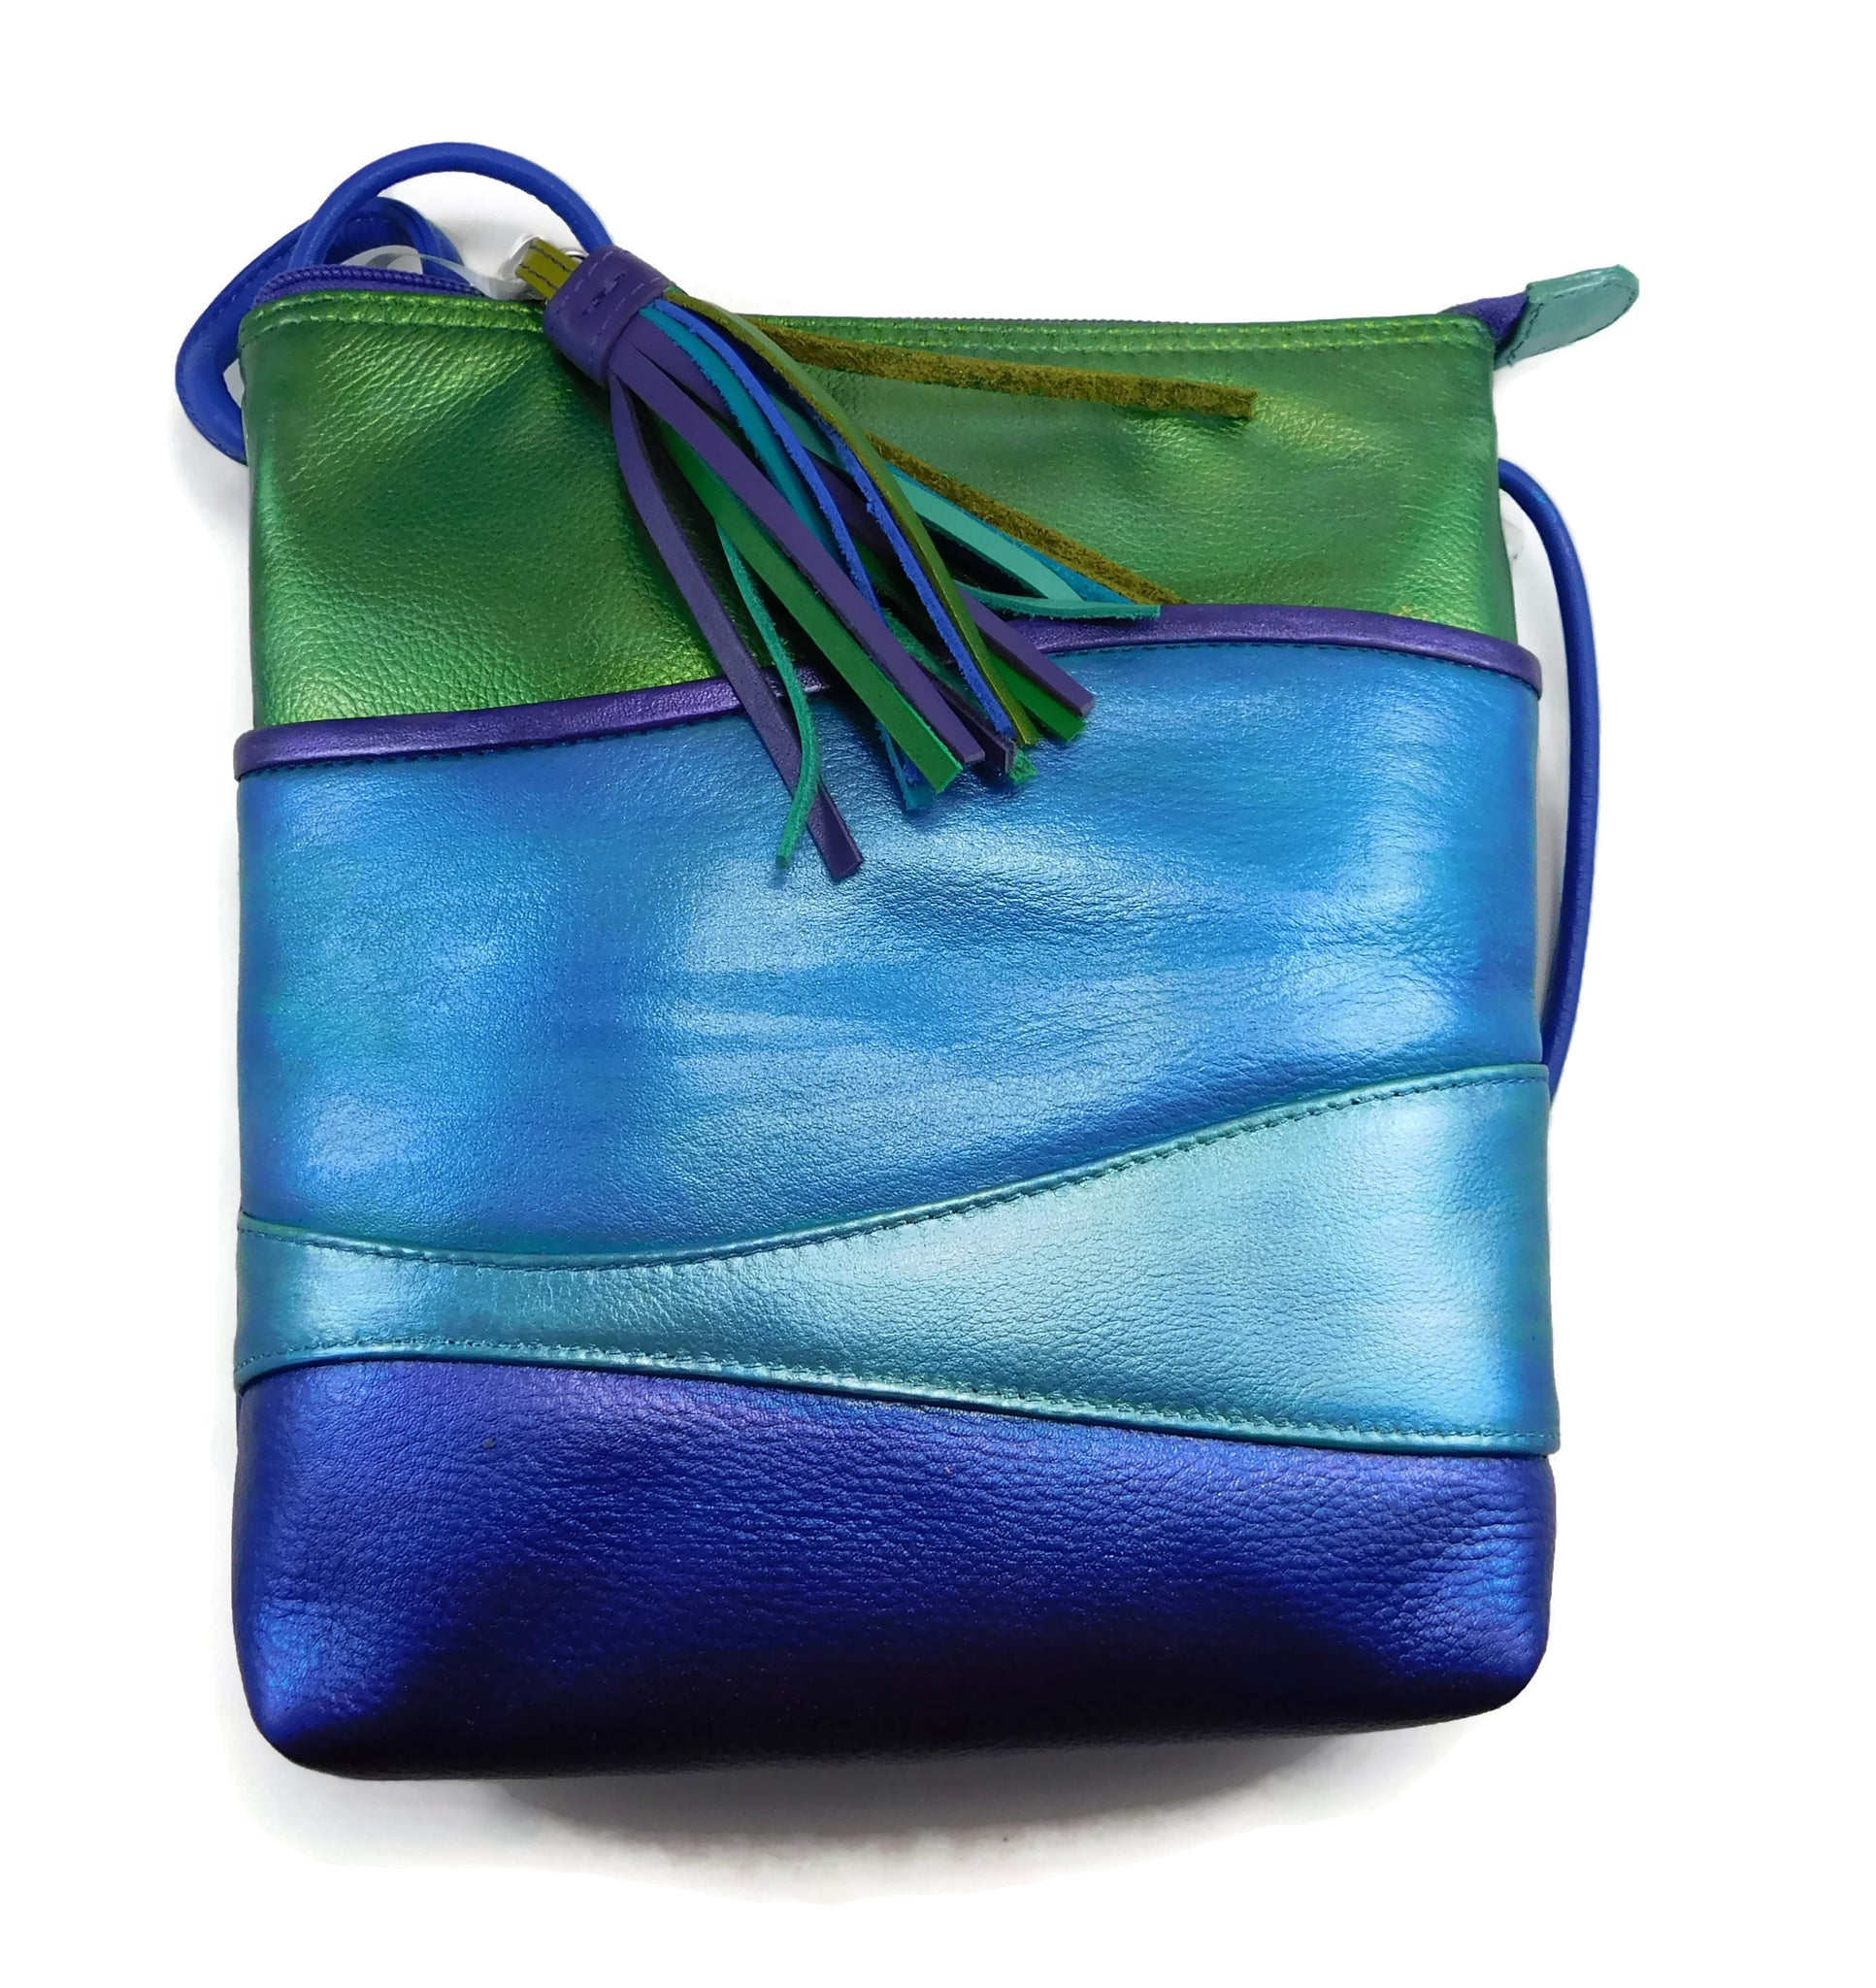 Handpainted leather lagoon shimmer purse